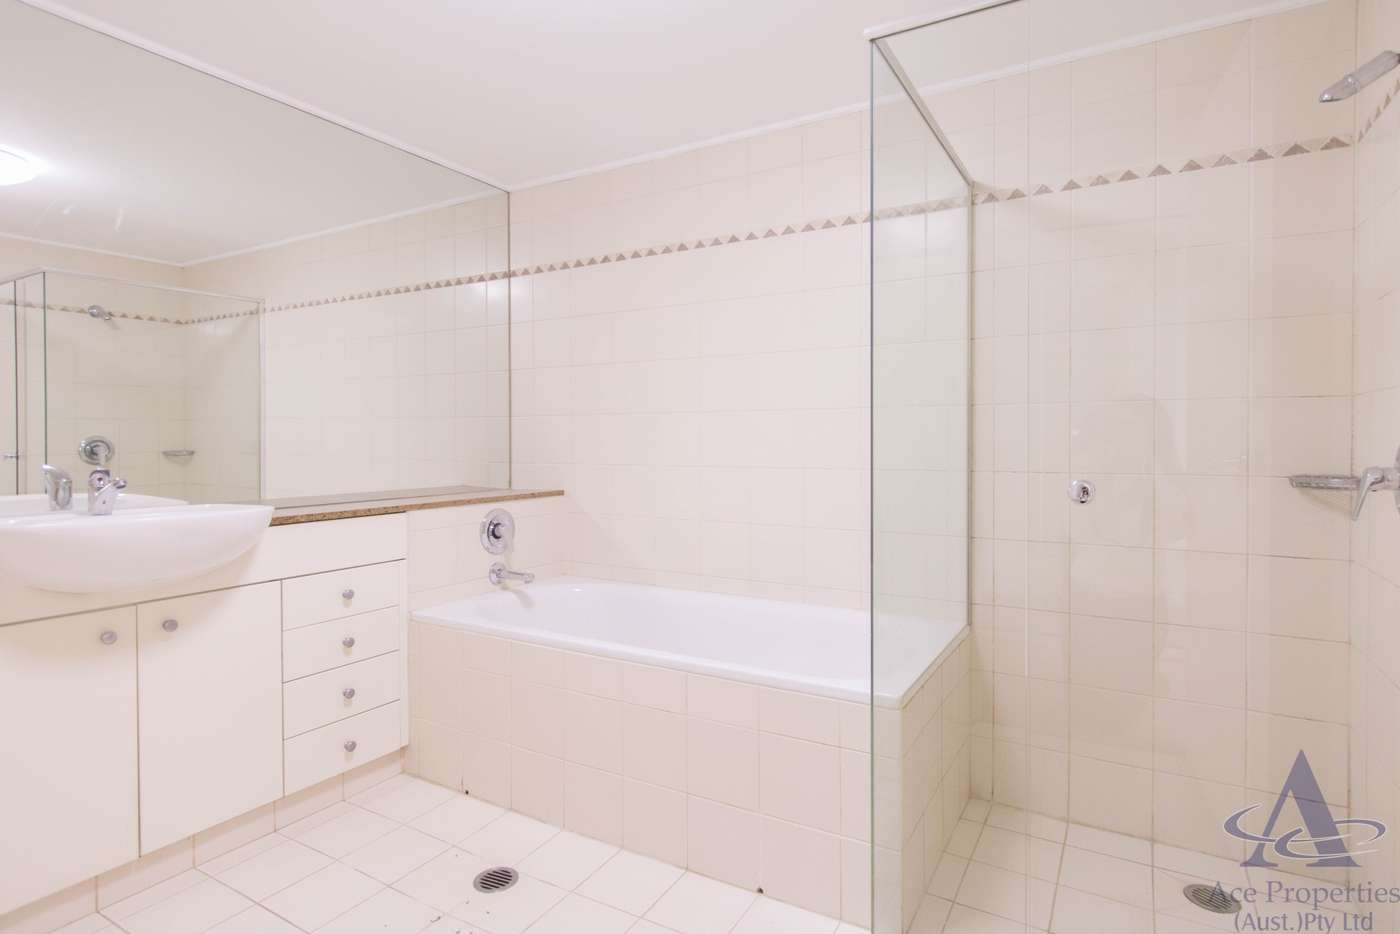 Sixth view of Homely apartment listing, 393 Pitt Street, Sydney NSW 2000